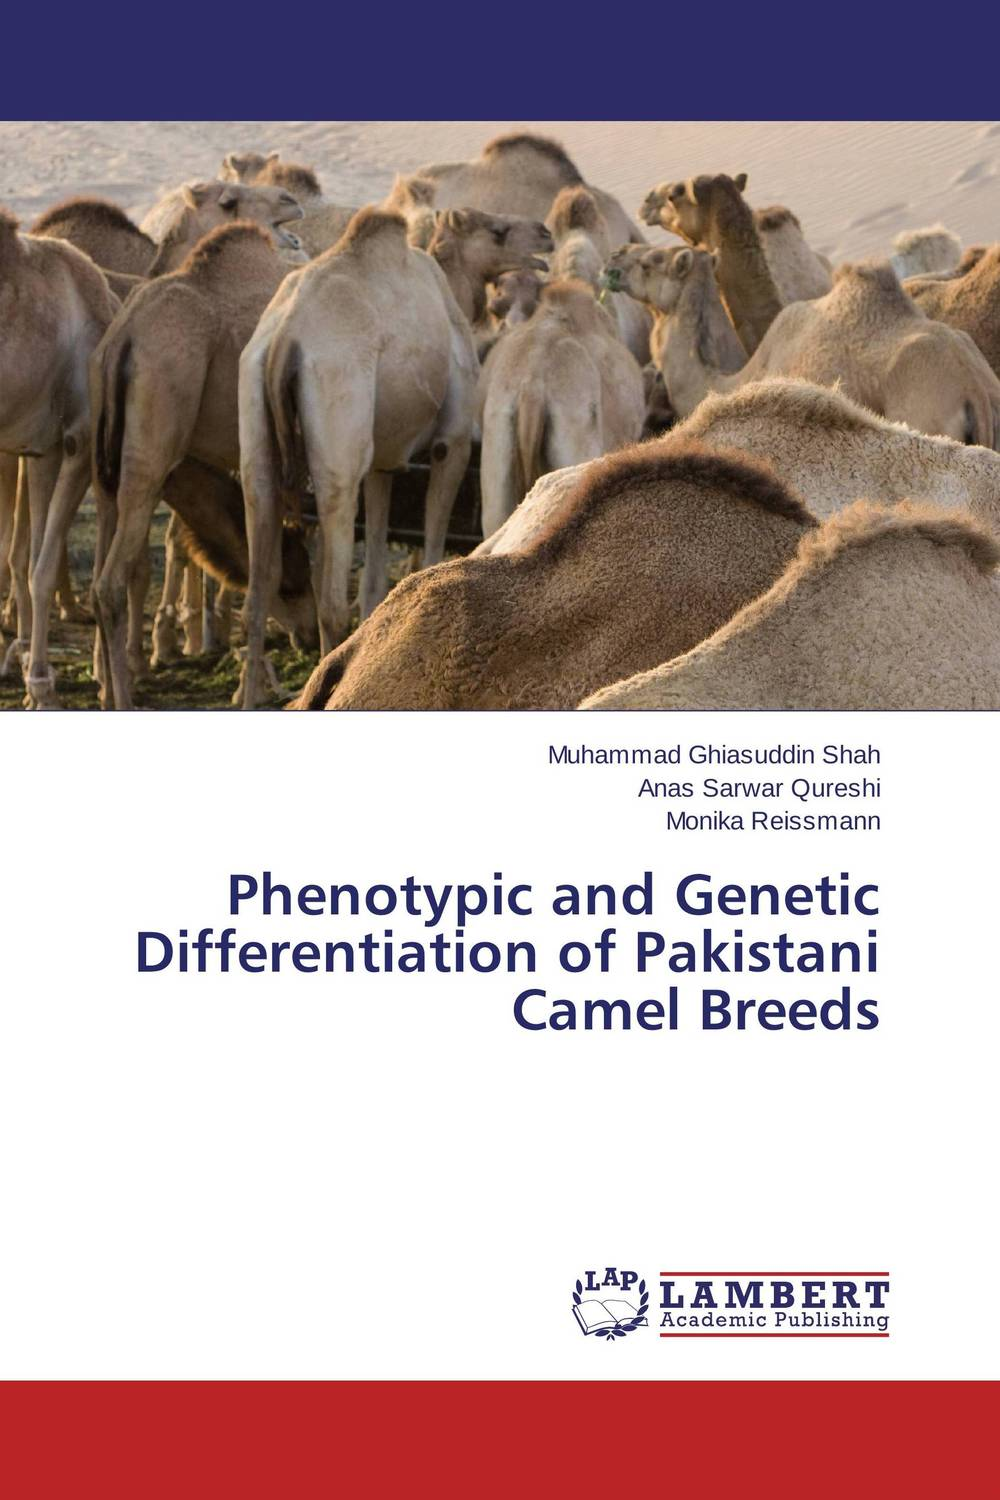 Phenotypic and Genetic Differentiation of Pakistani Camel Breeds in vitro mechanism for the repair of muscle differentiation in dm1